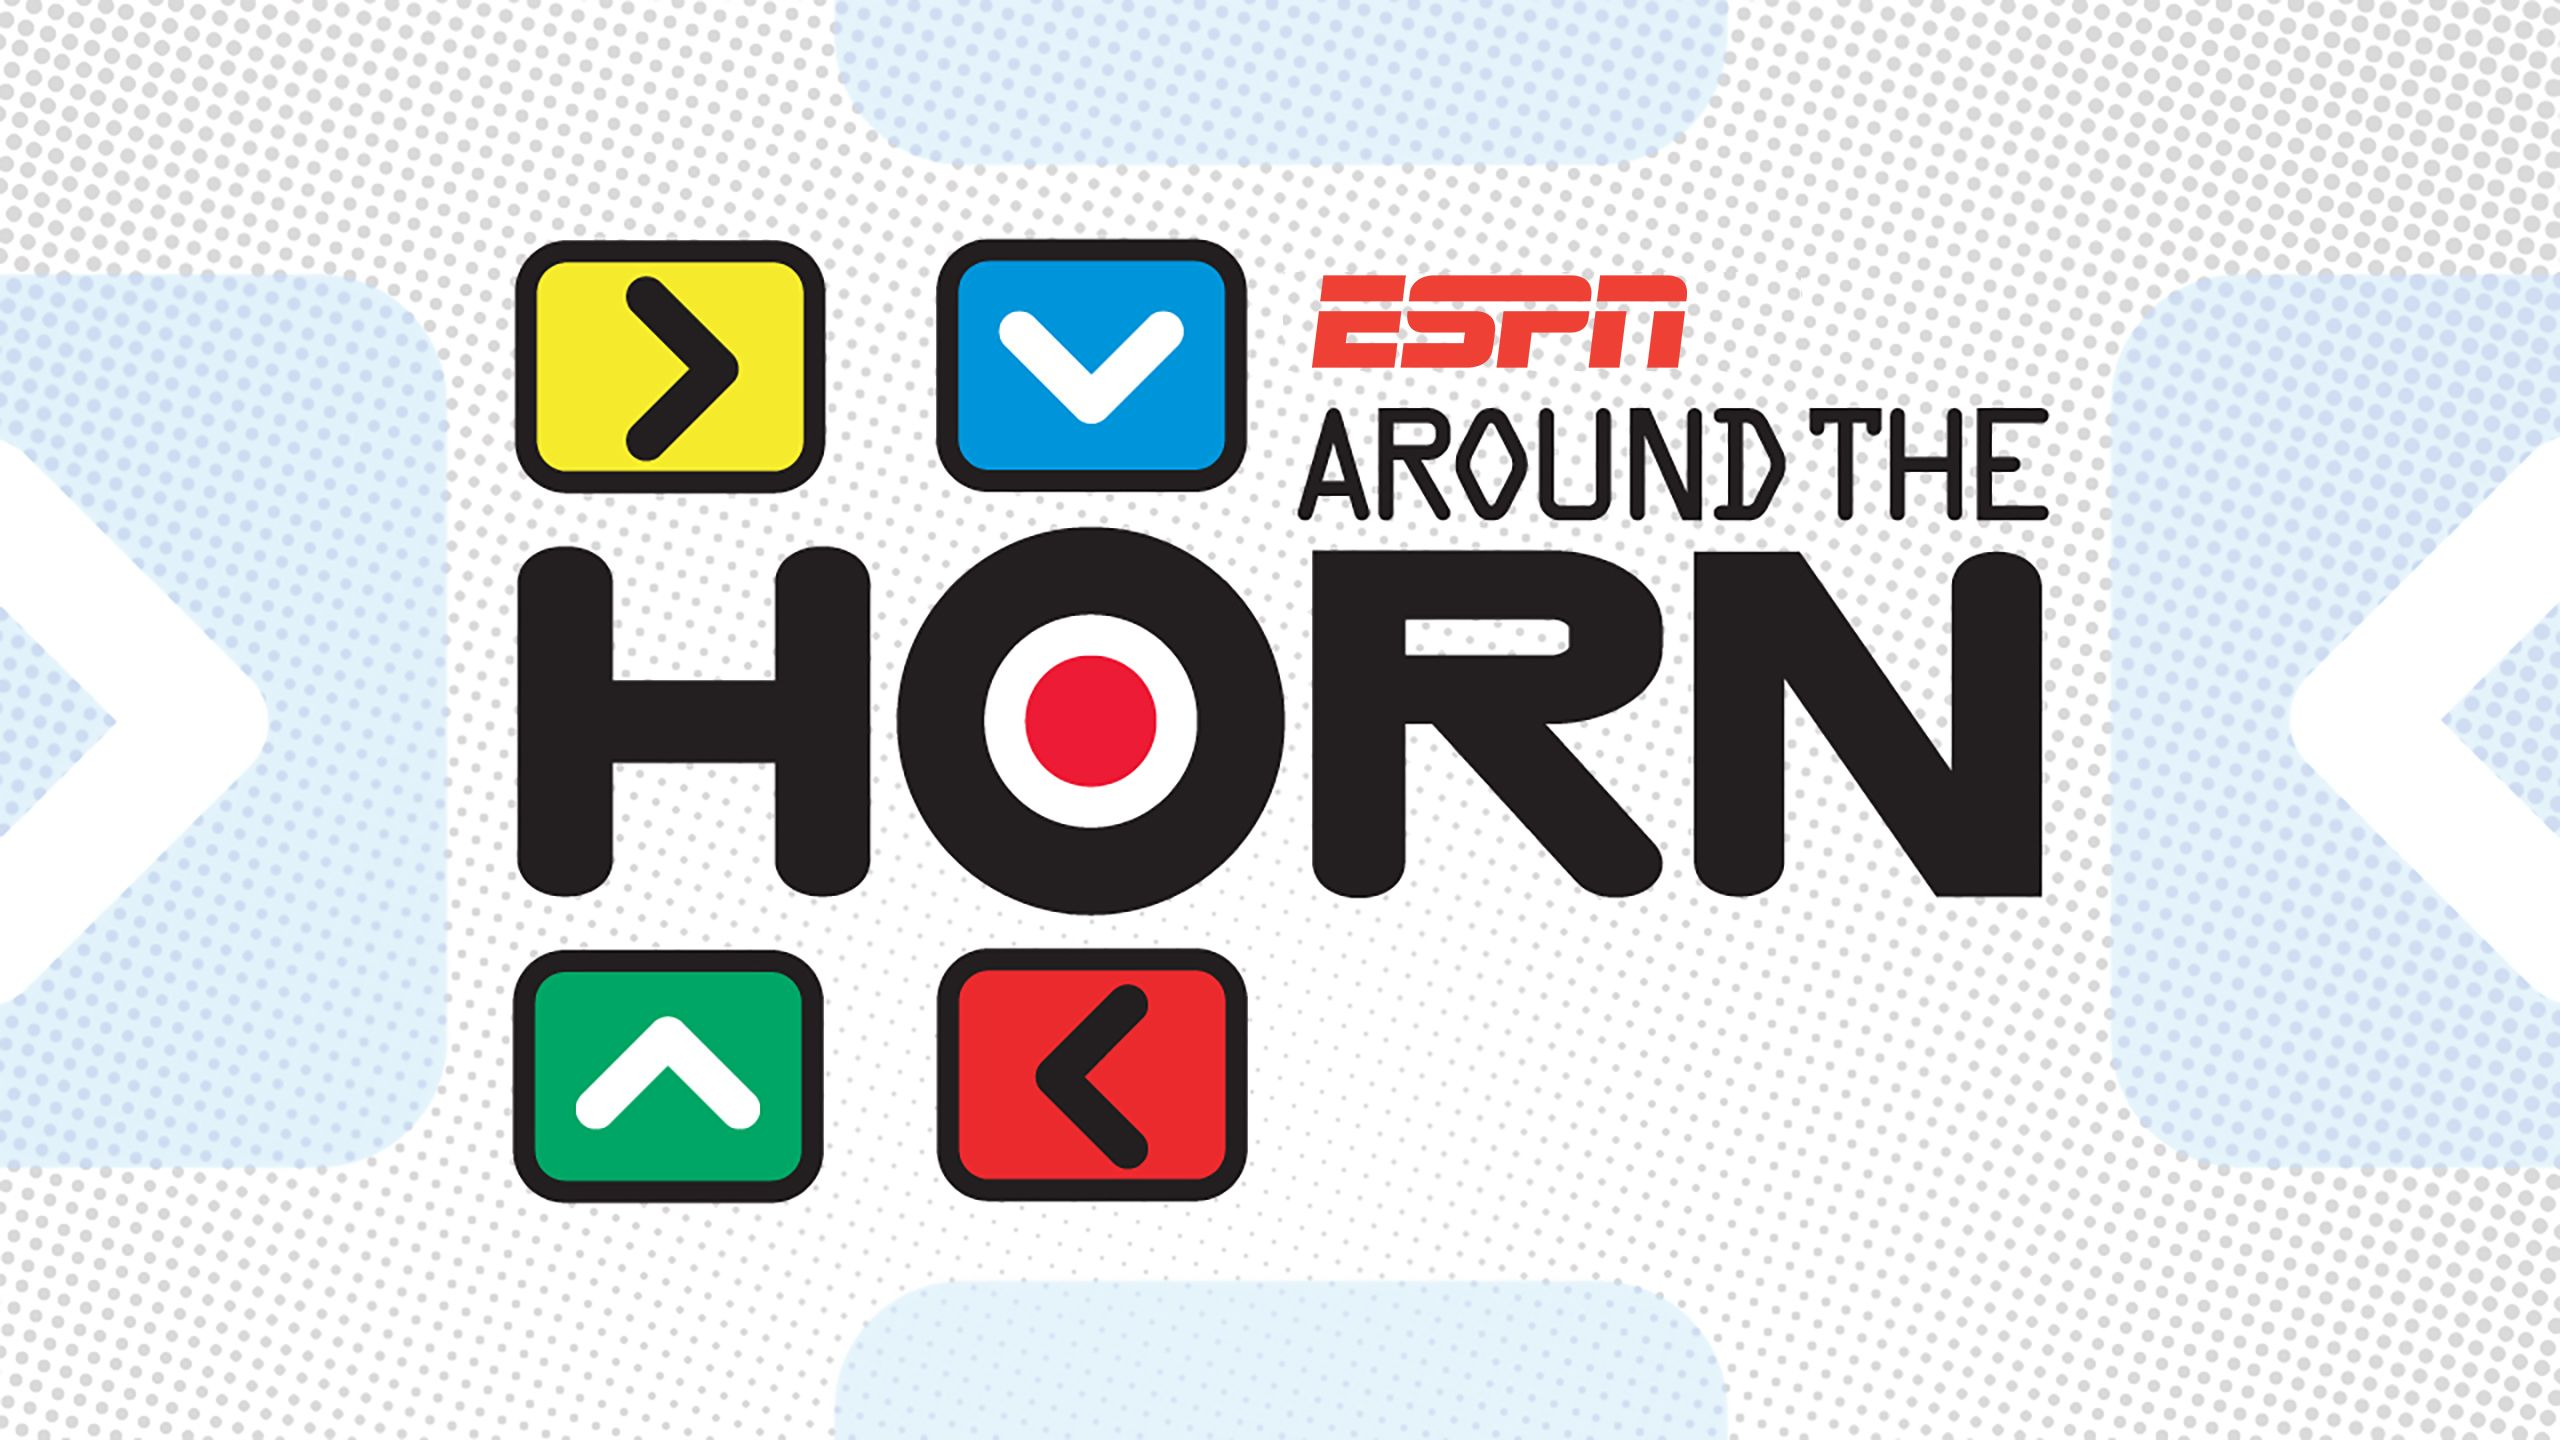 Wed, 12/13 - Around The Horn